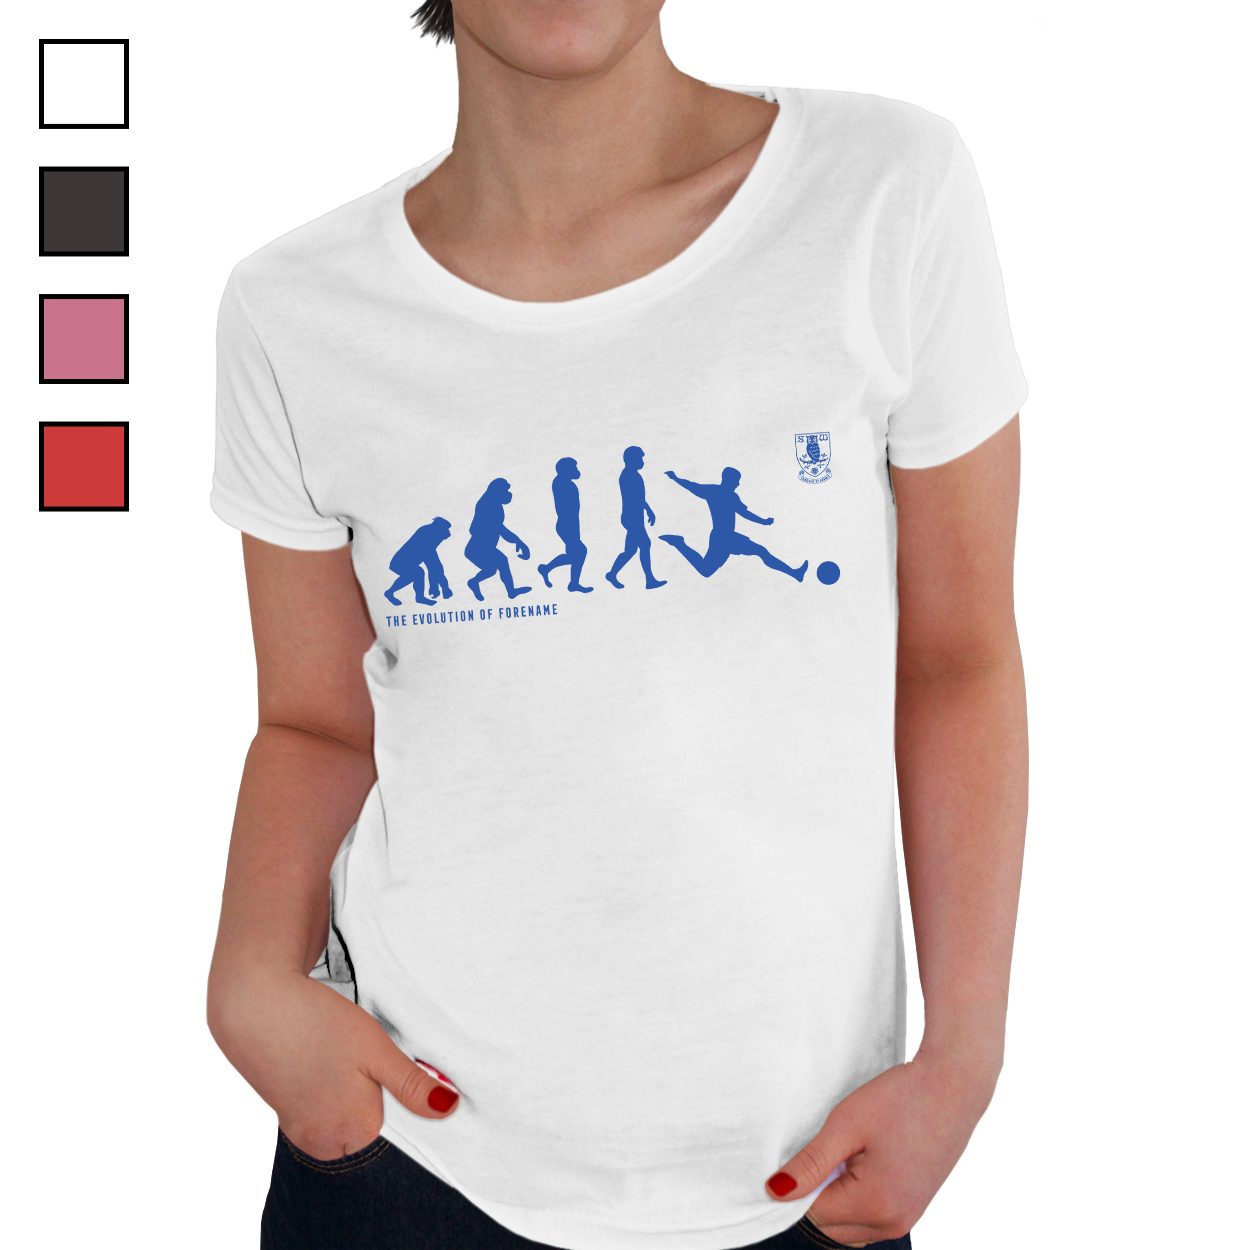 Sheffield Wednesday Evolution Ladies T-Shirt